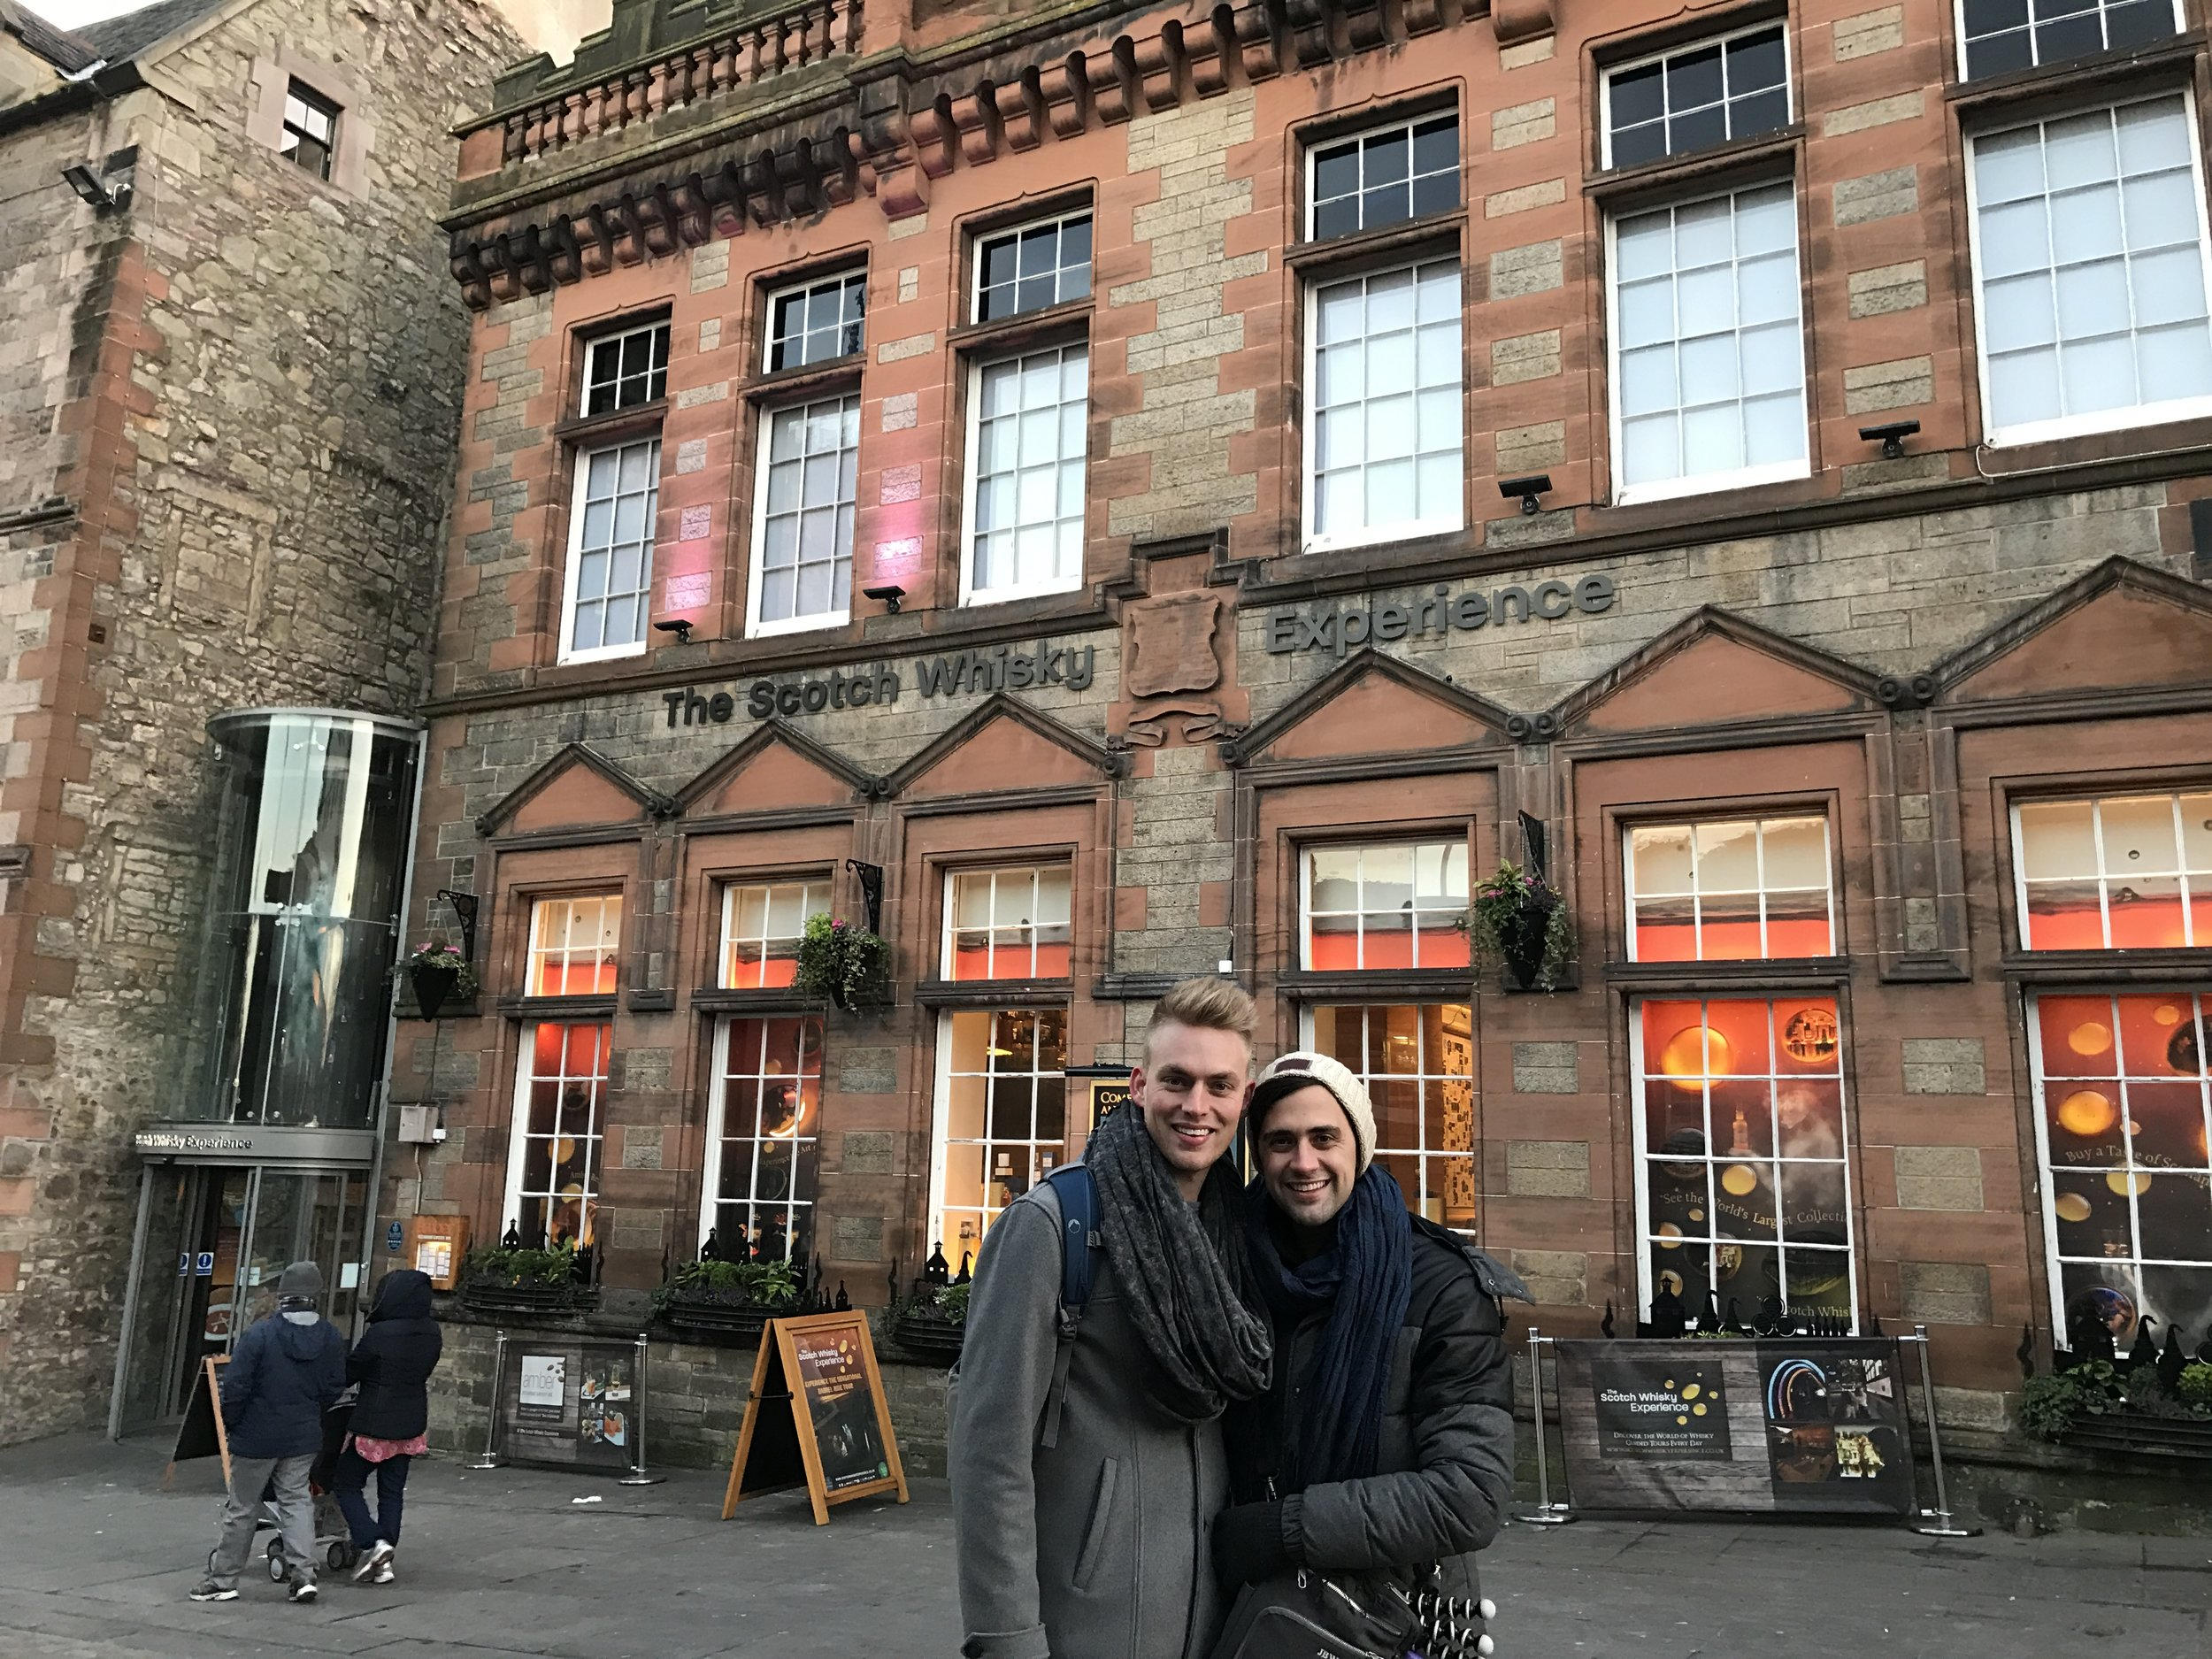 Outside  The Scotch Whisky Experience